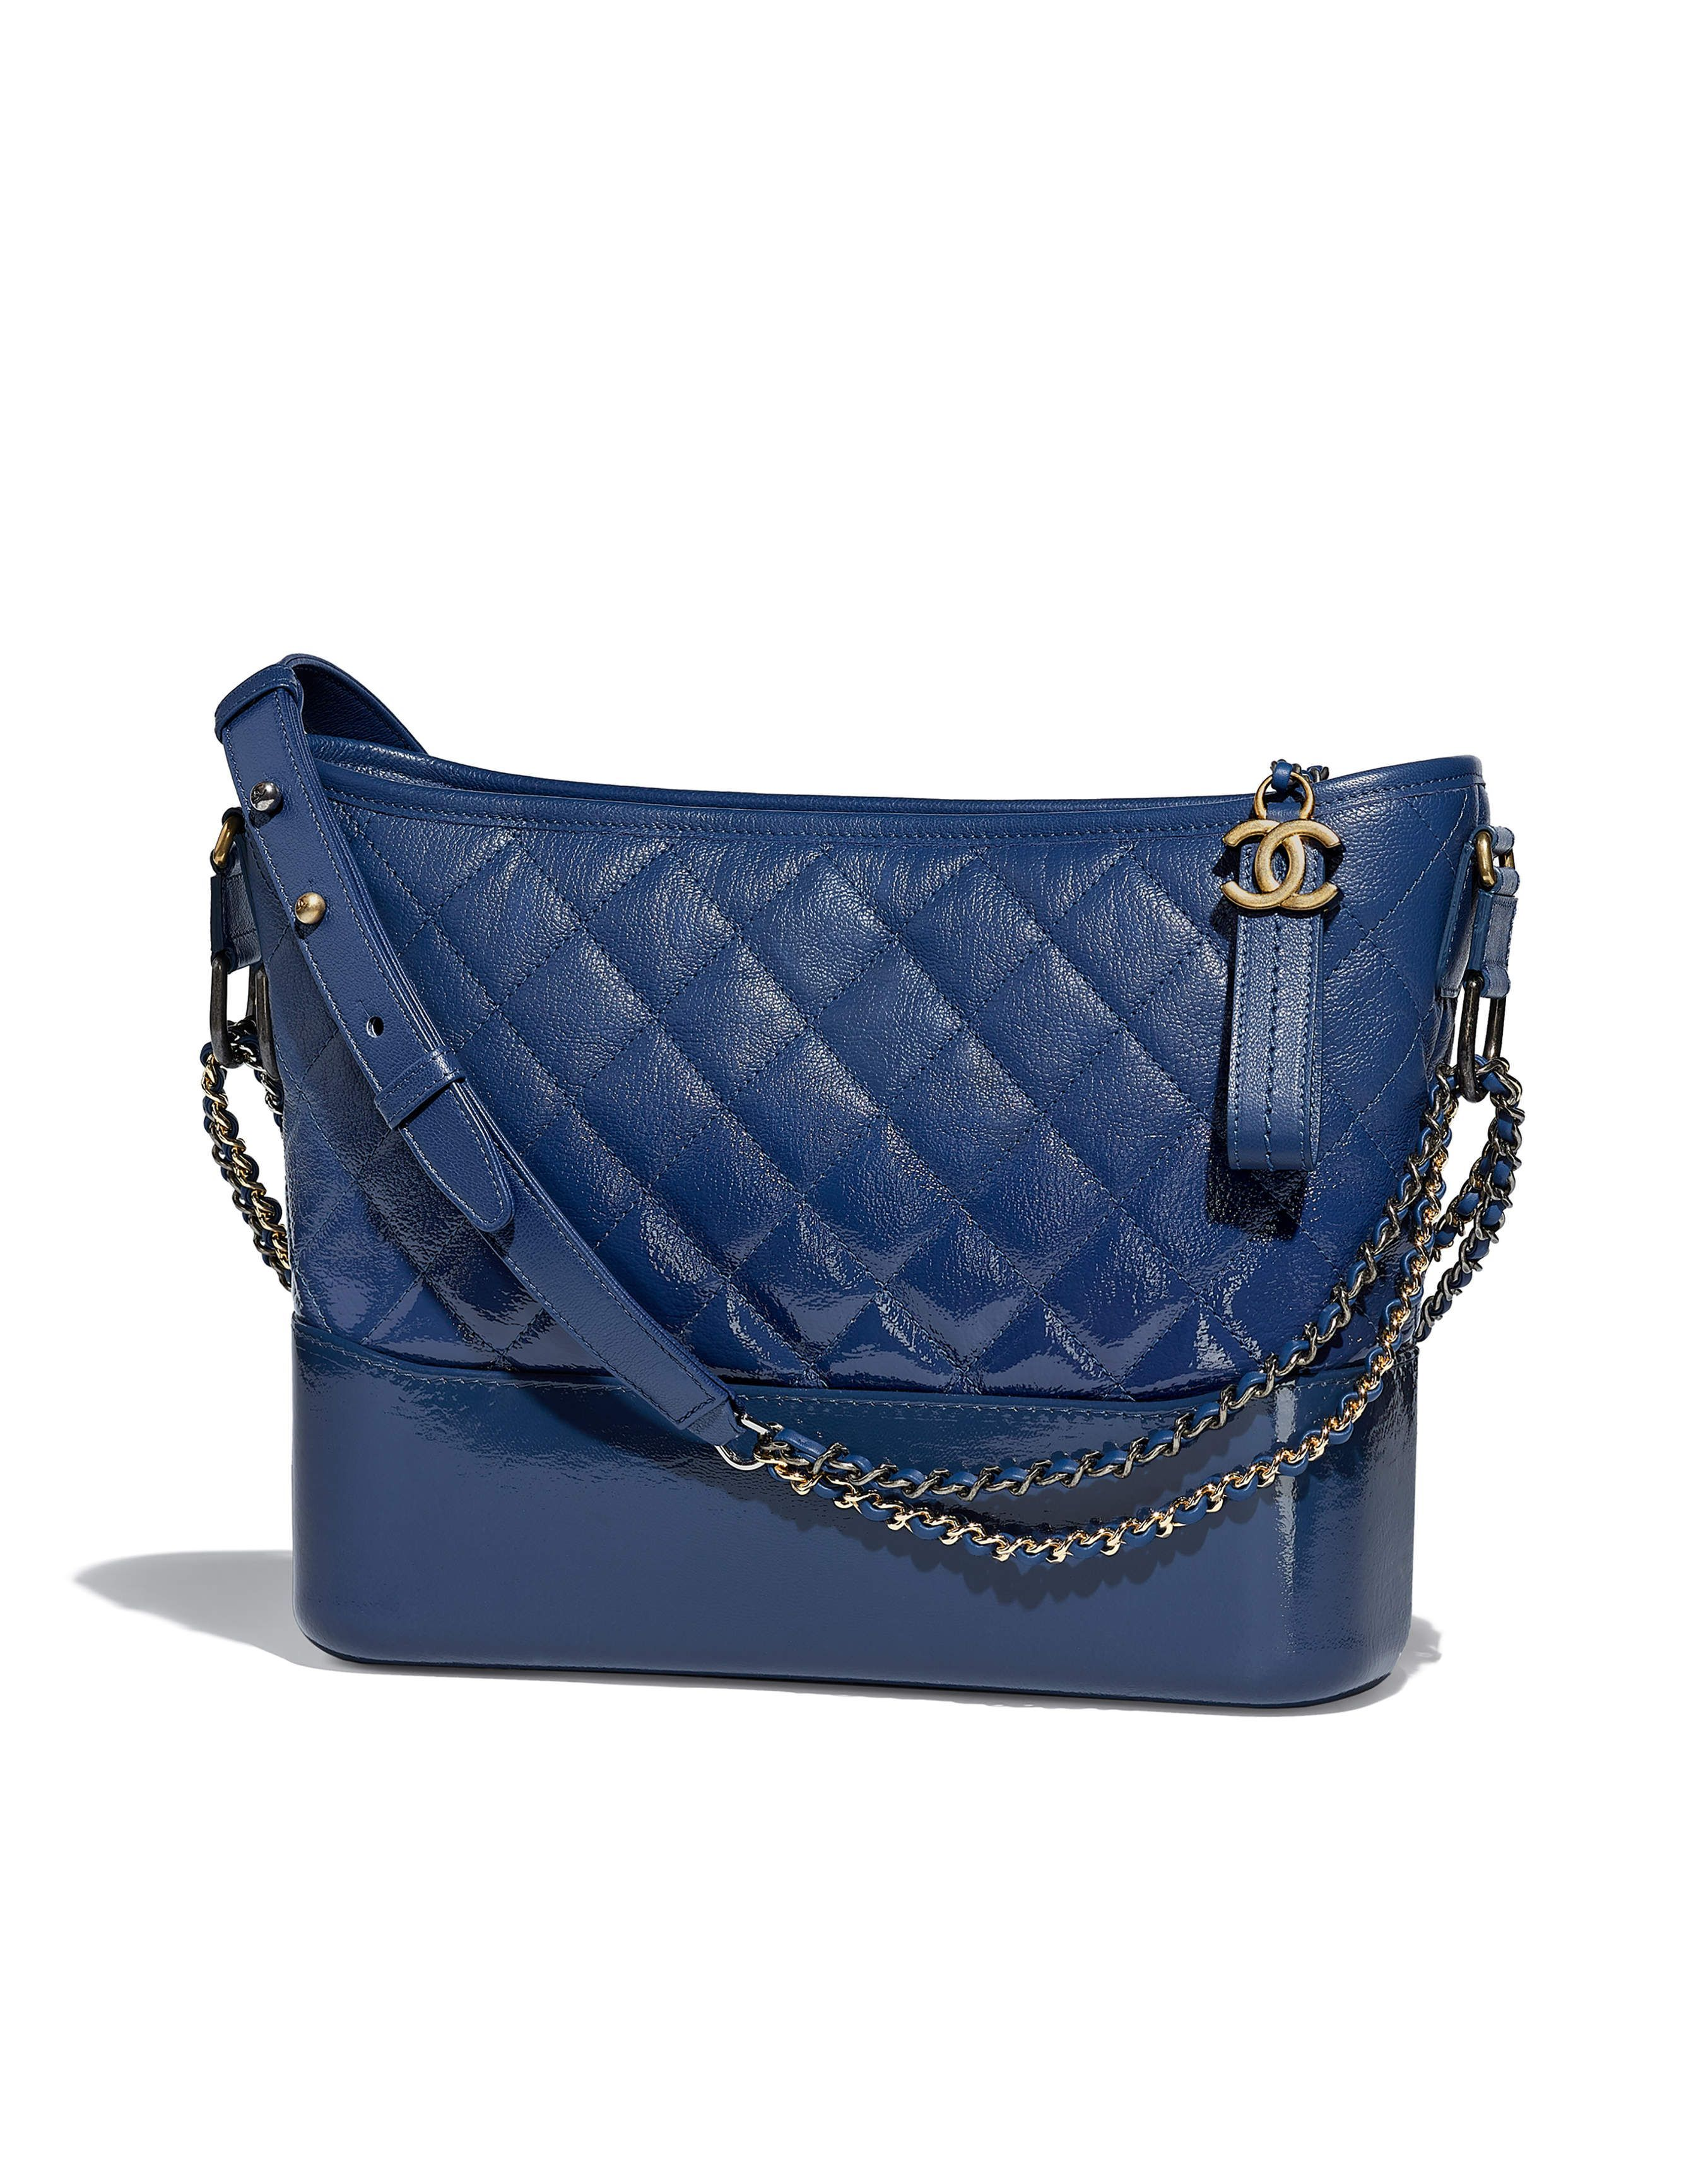 5302c4aab11a The SPRING-SUMMER 2018 Handbags collection on the CHANEL official website